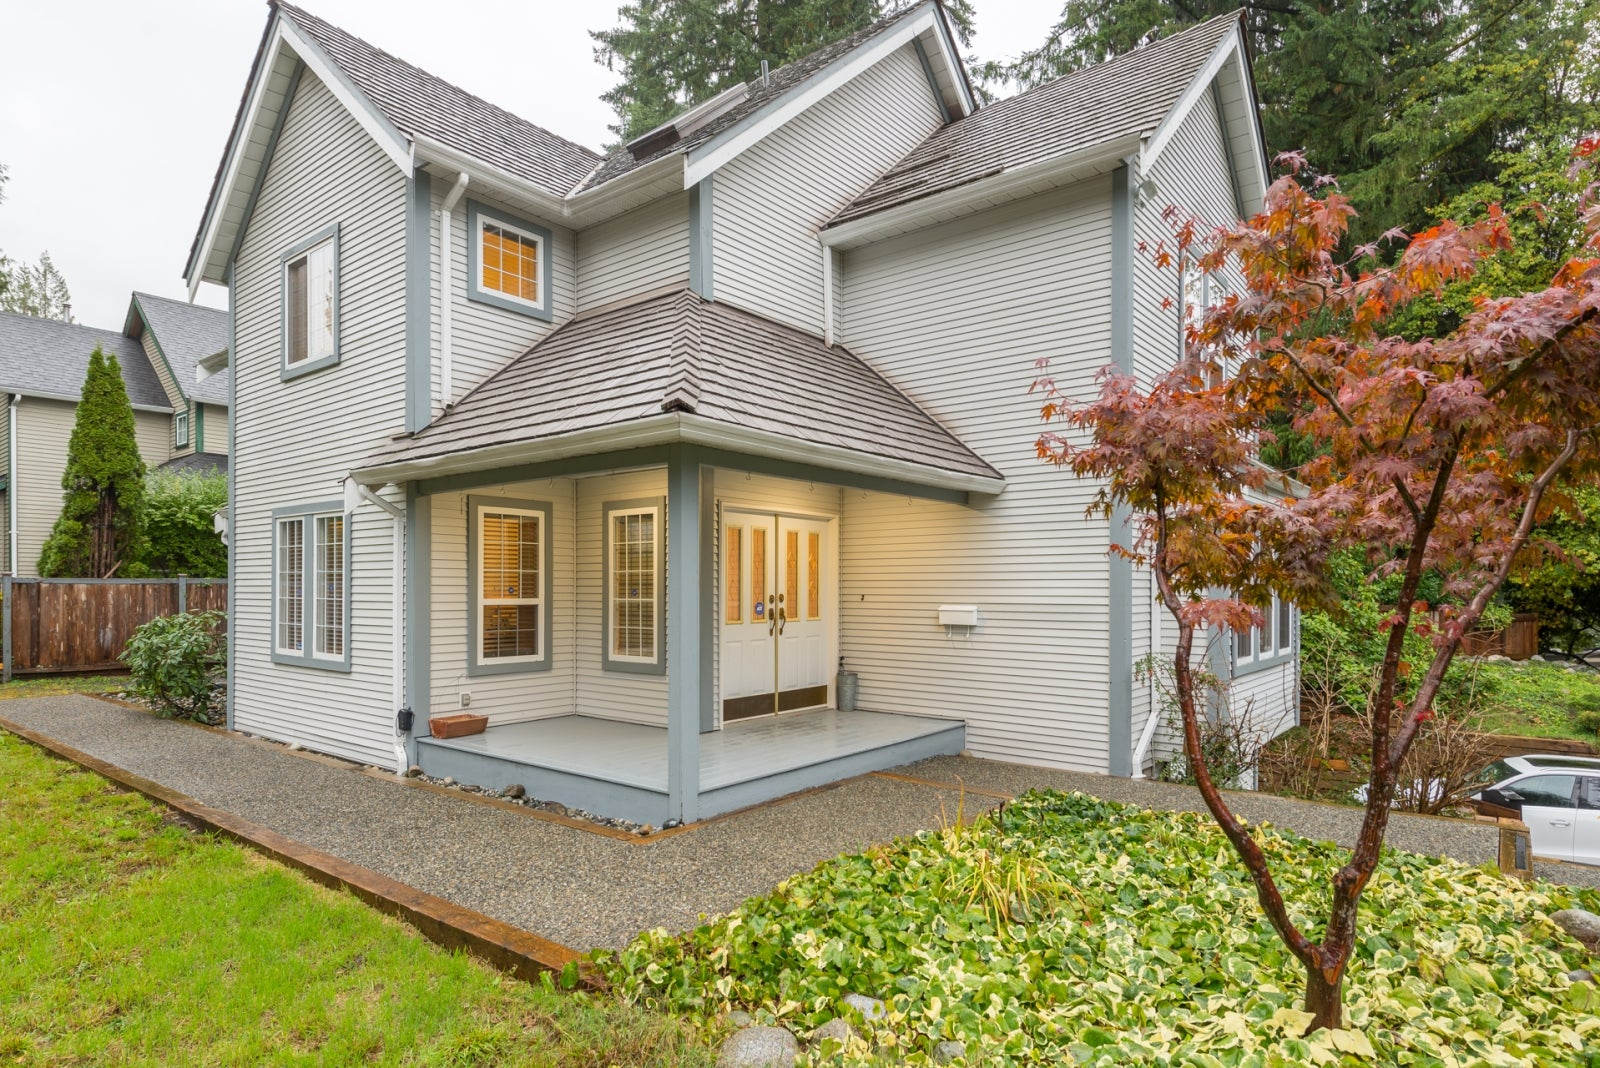 1780 LANGWORTHY STREET - Lynn Valley House/Single Family for sale, 4 Bedrooms (R2215480) #2